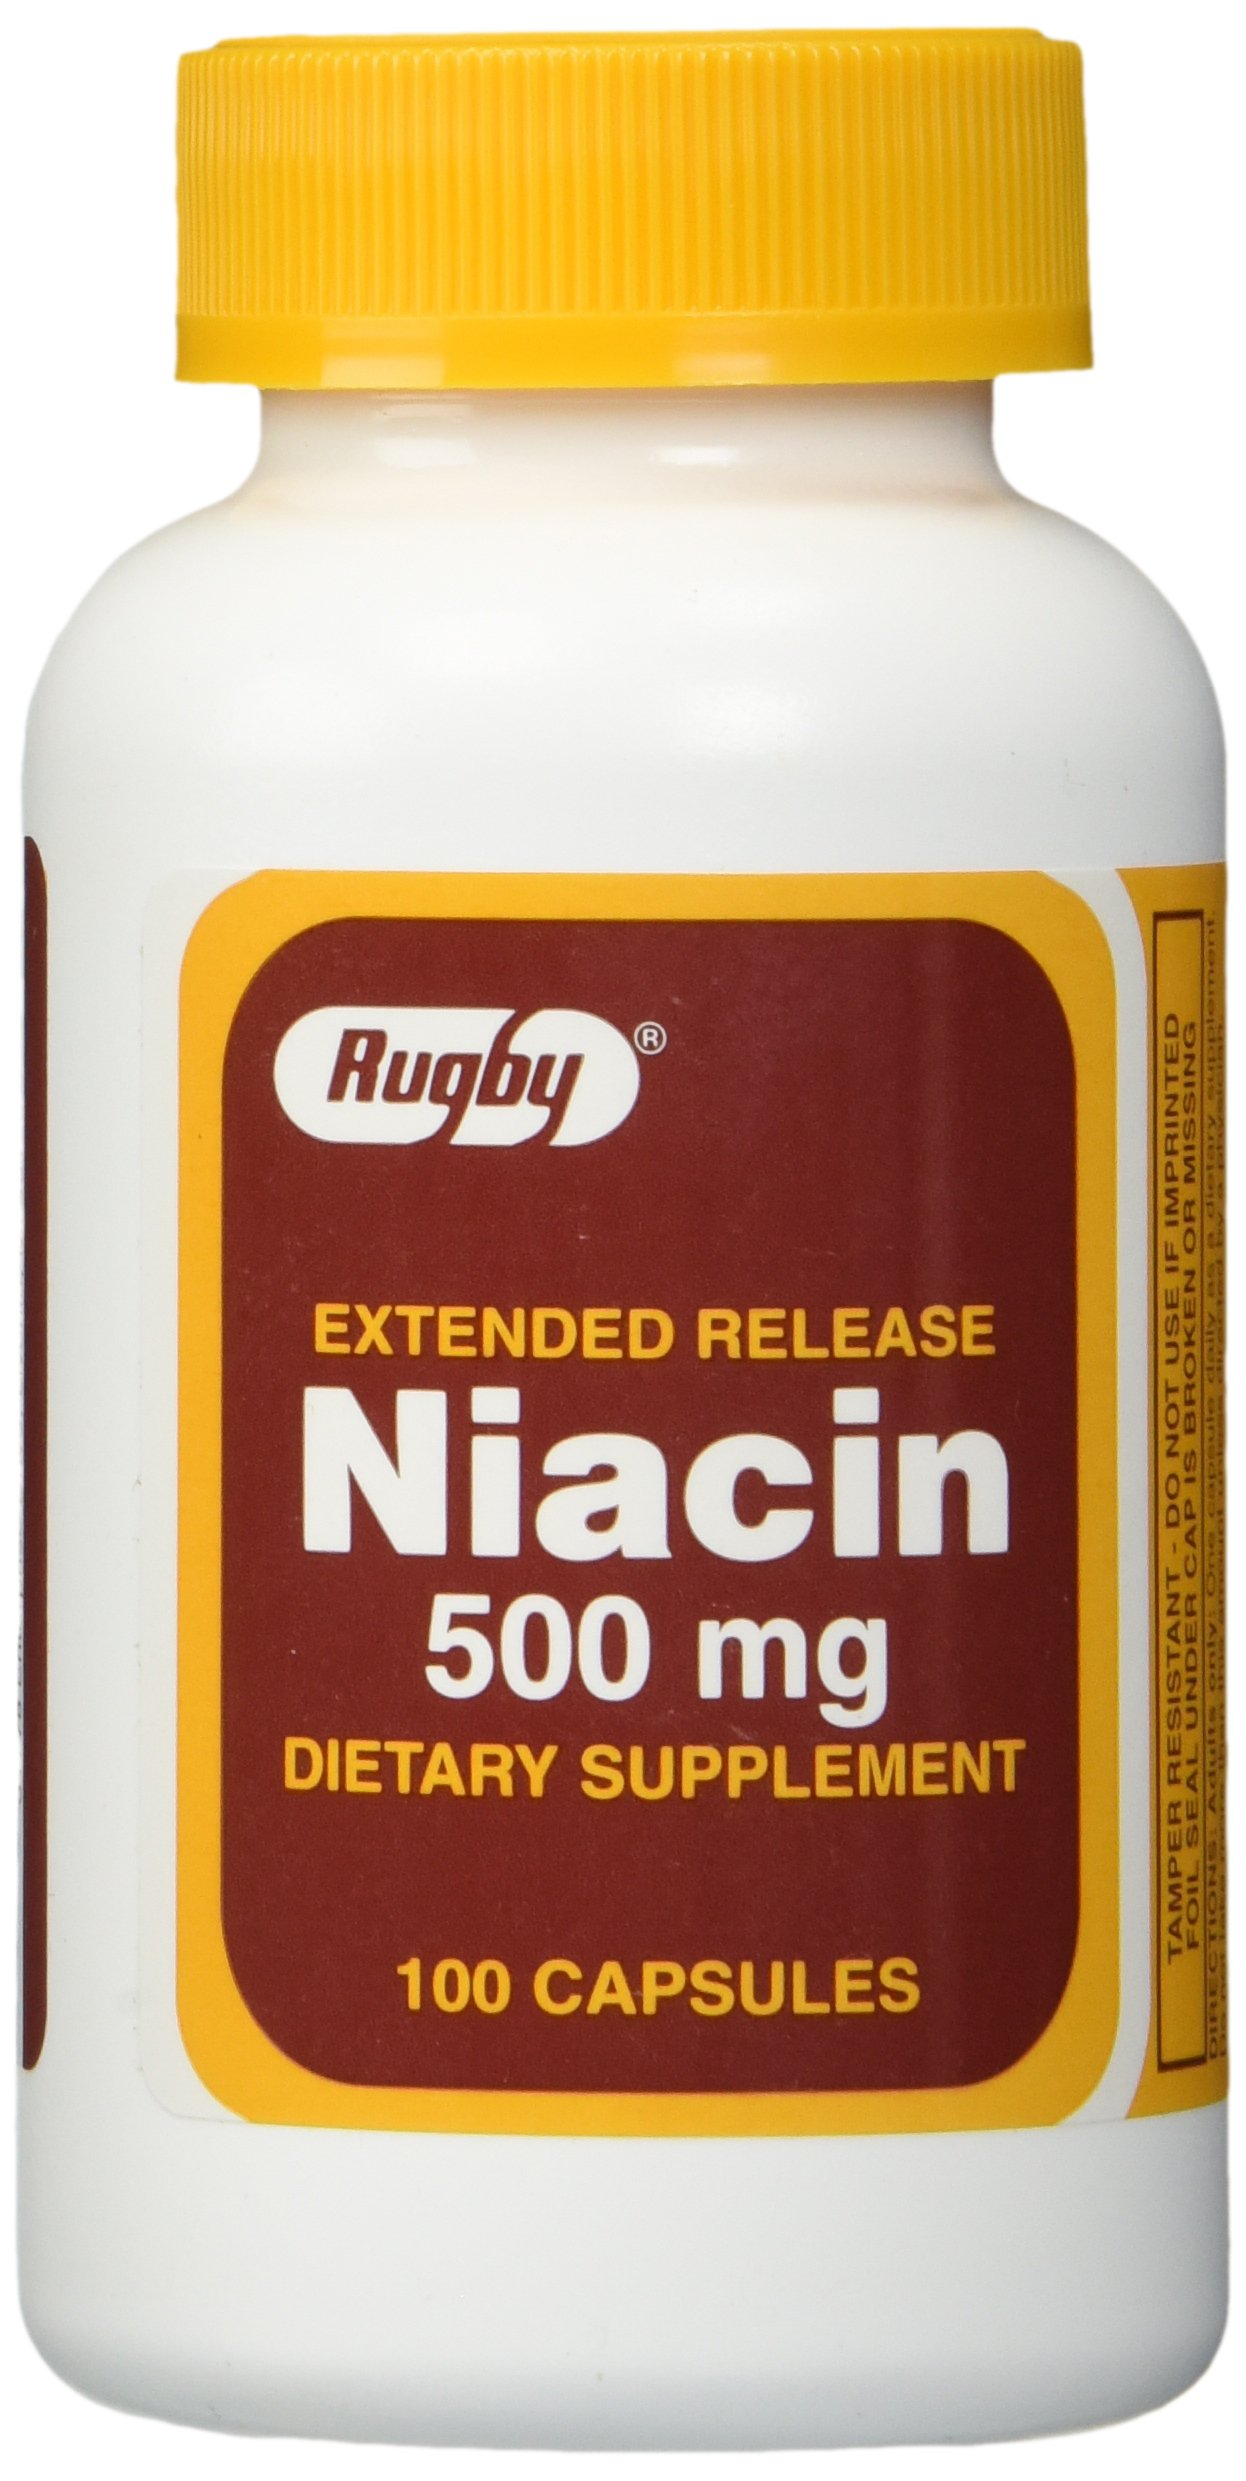 Rugby Extended Release Niacin 500mg Capsules - 3 Pack (3) by Rugby